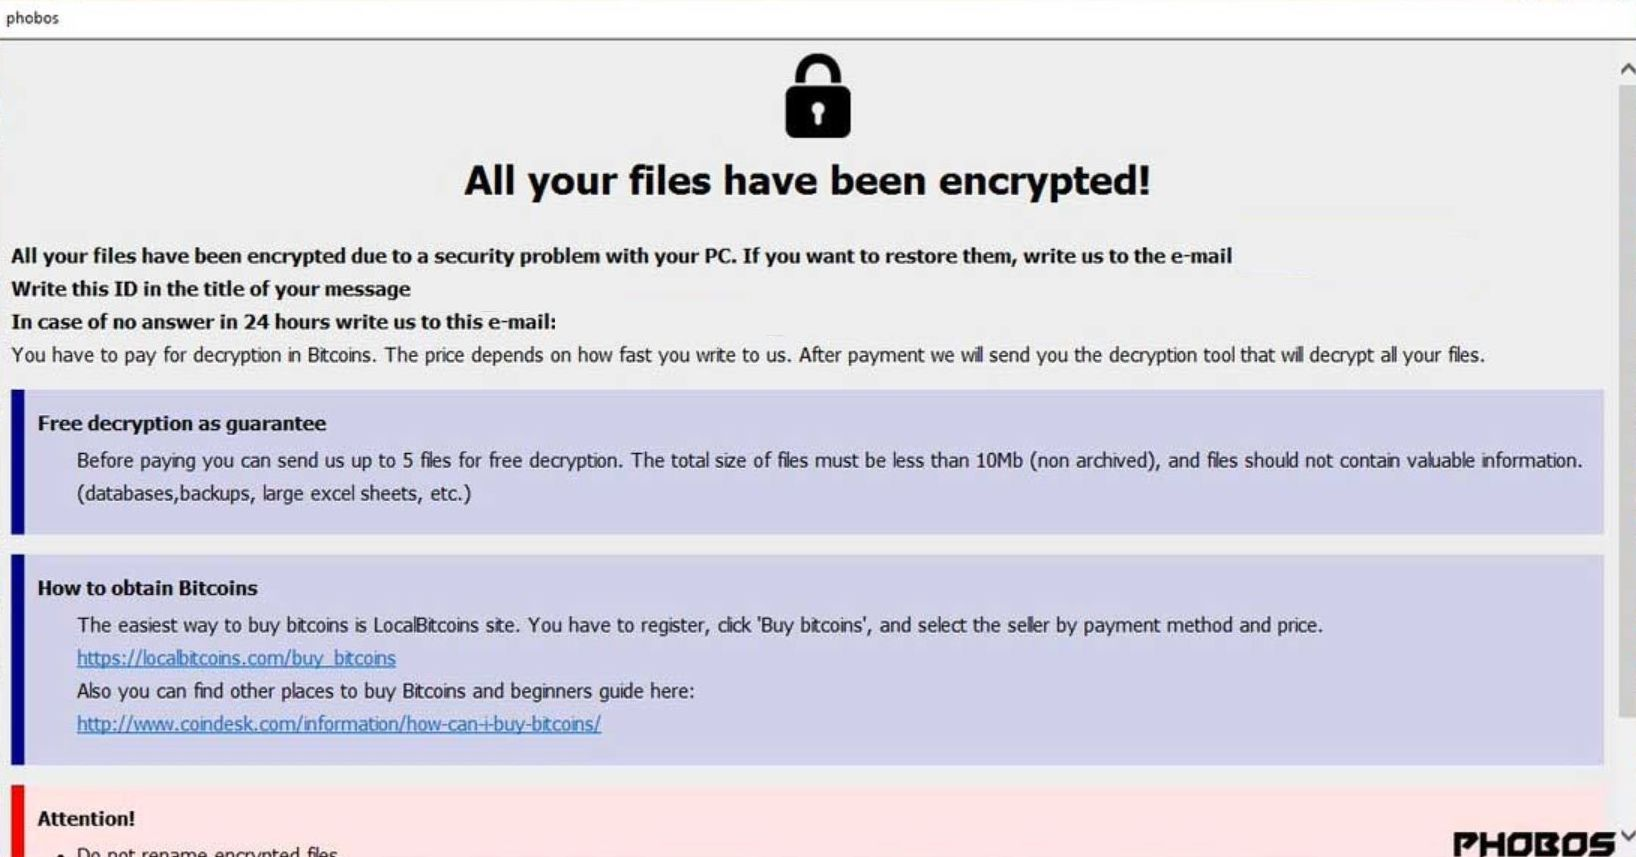 How to remove Phobos ransomware (Virus Removal Guide)